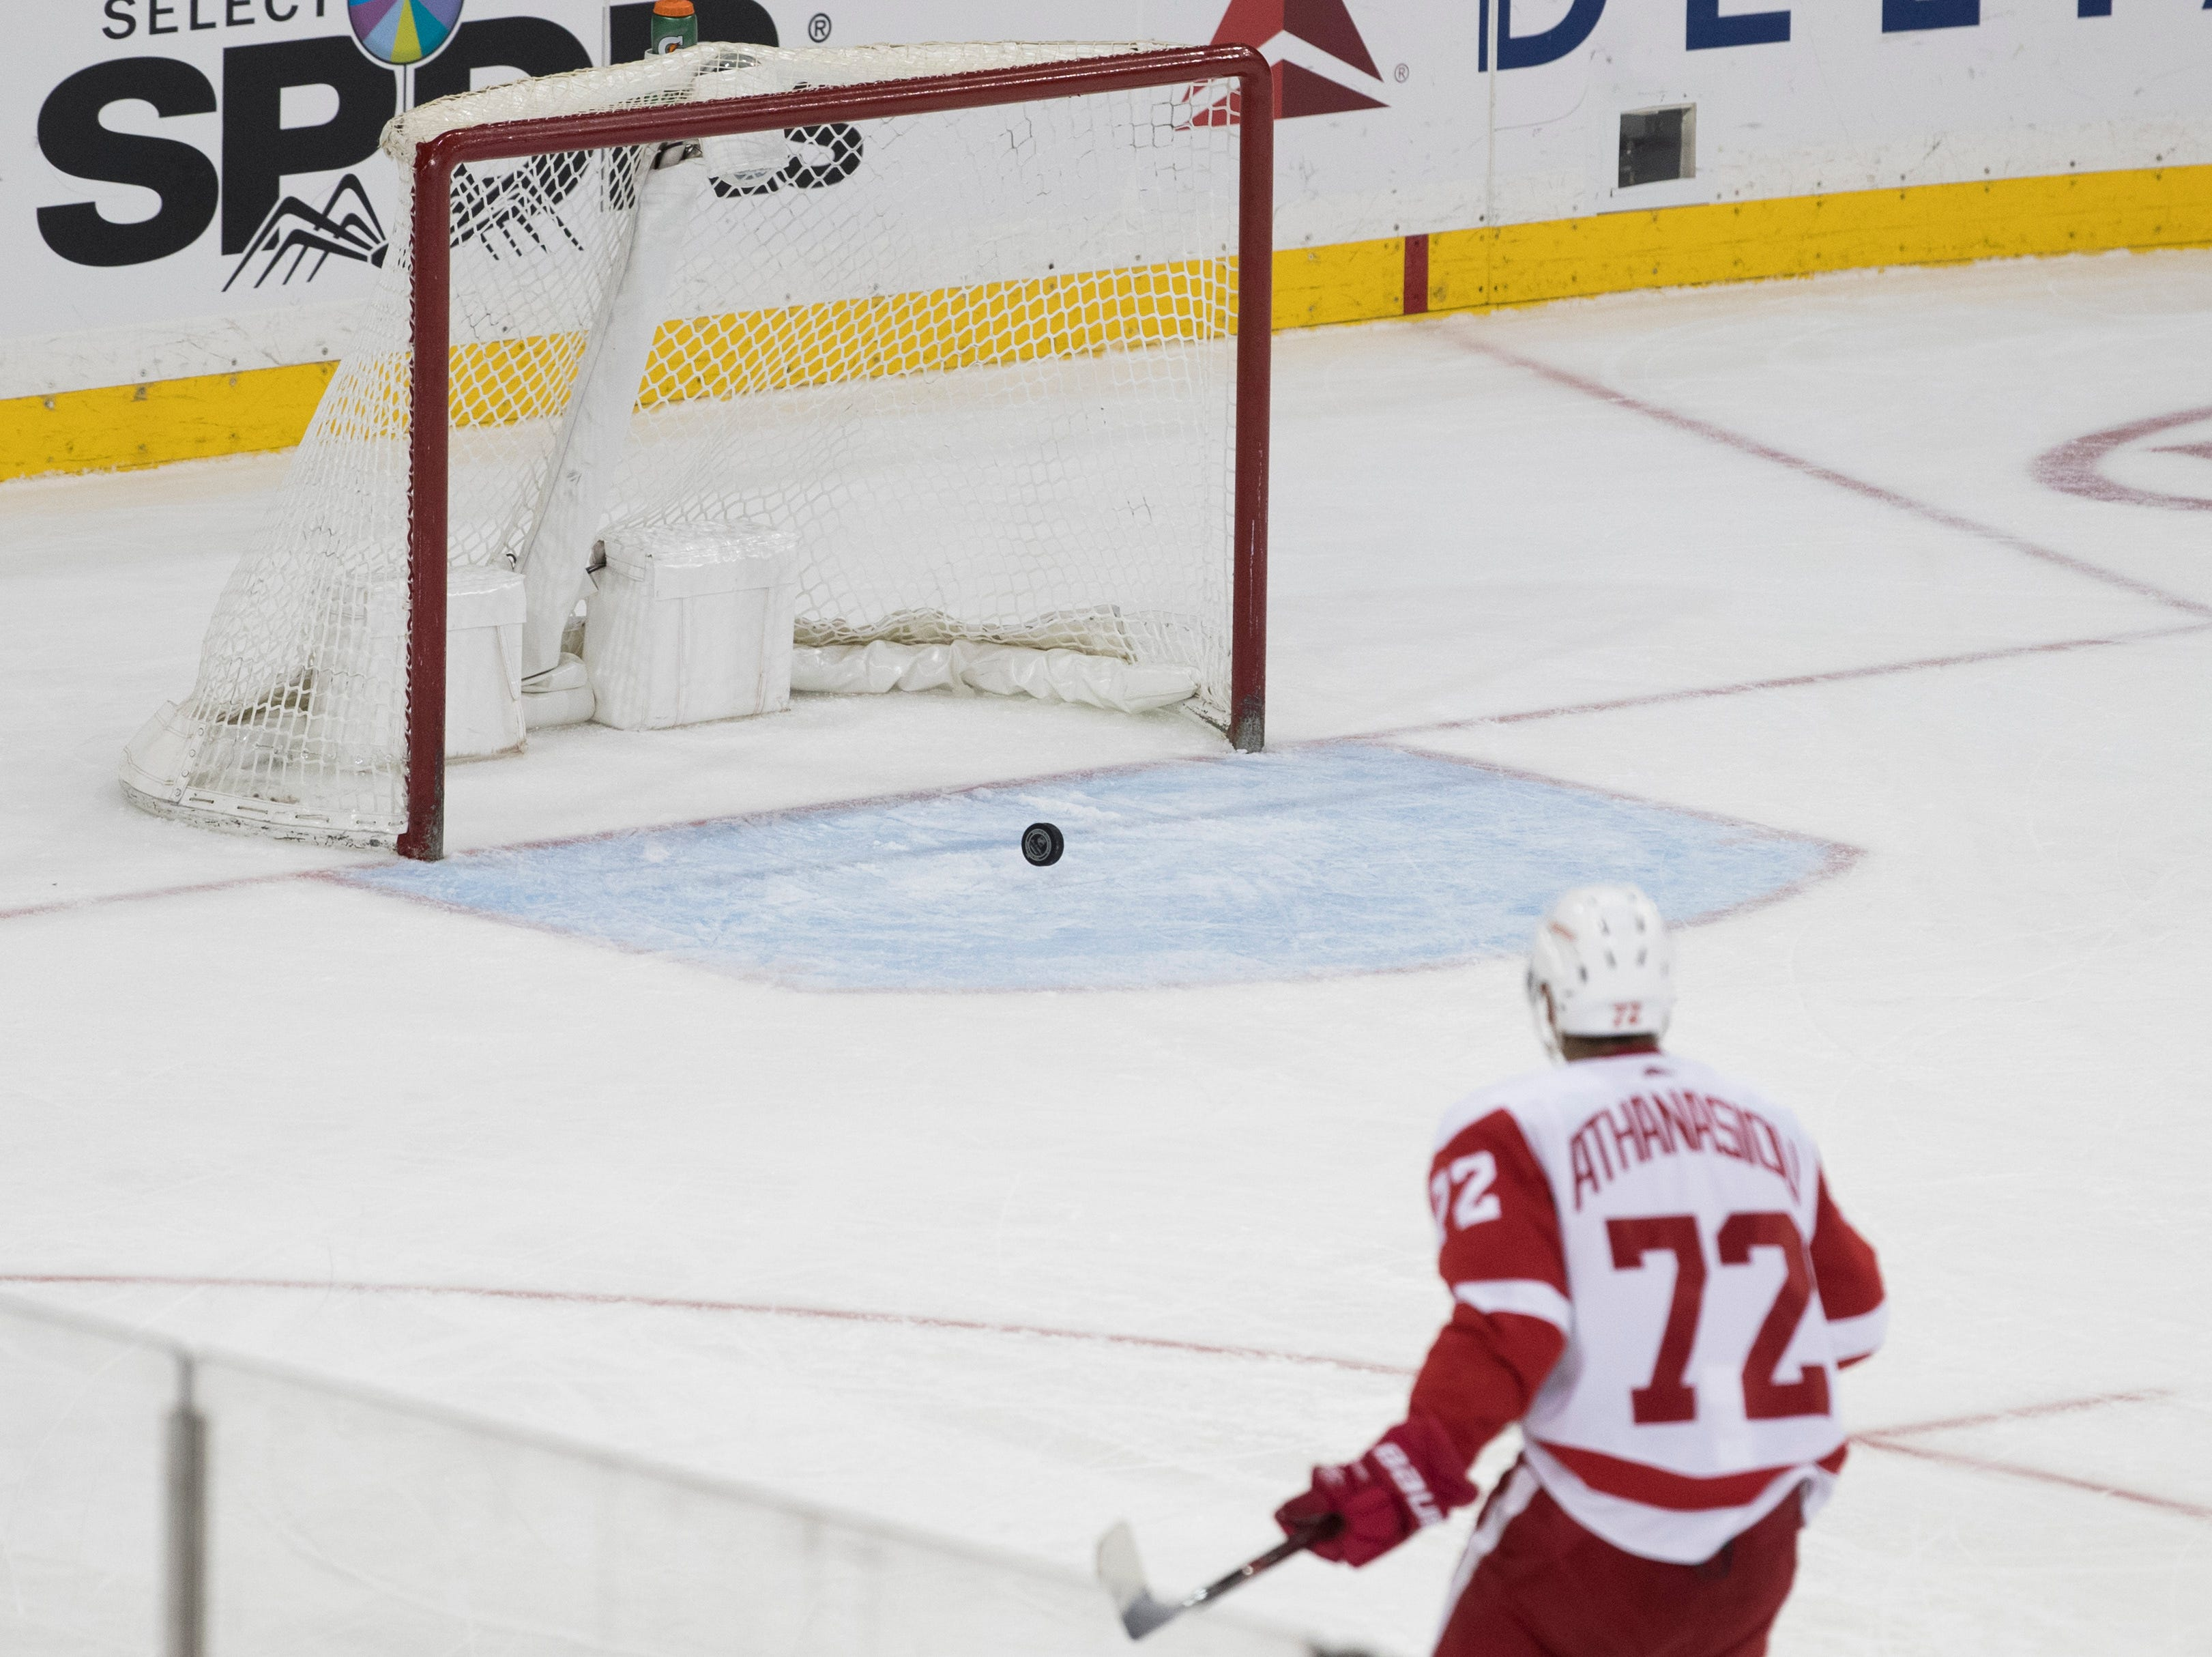 Detroit Red Wings center Andreas Athanasiou scores the winning goal during the third period.